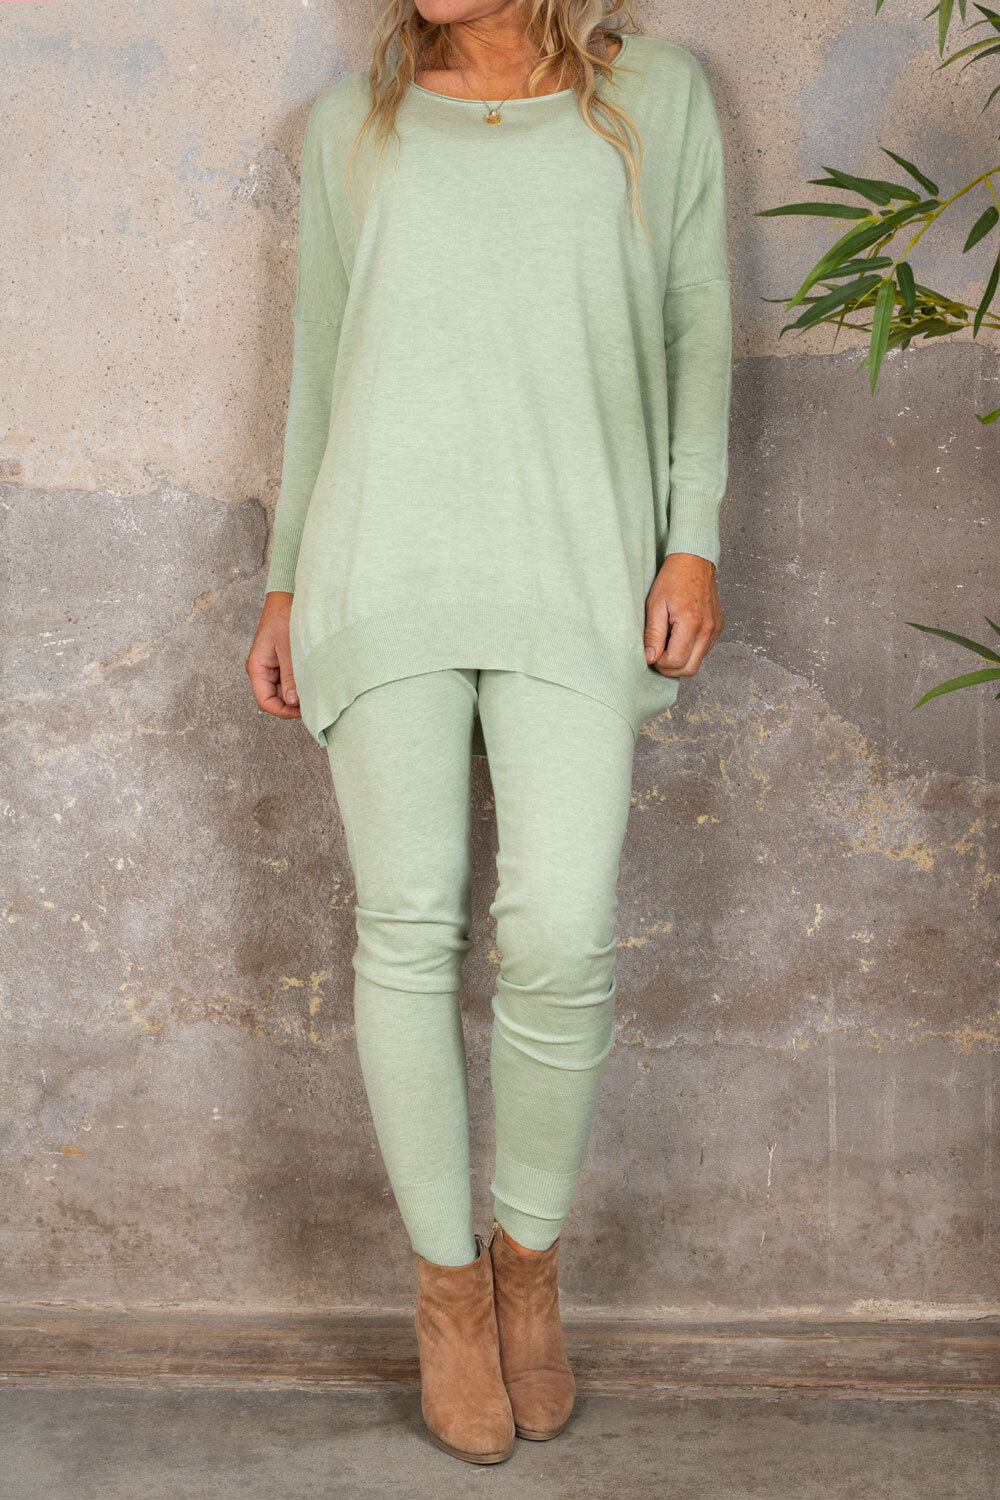 Brittany - Knitted set - Sweater and Trousers -Mint green